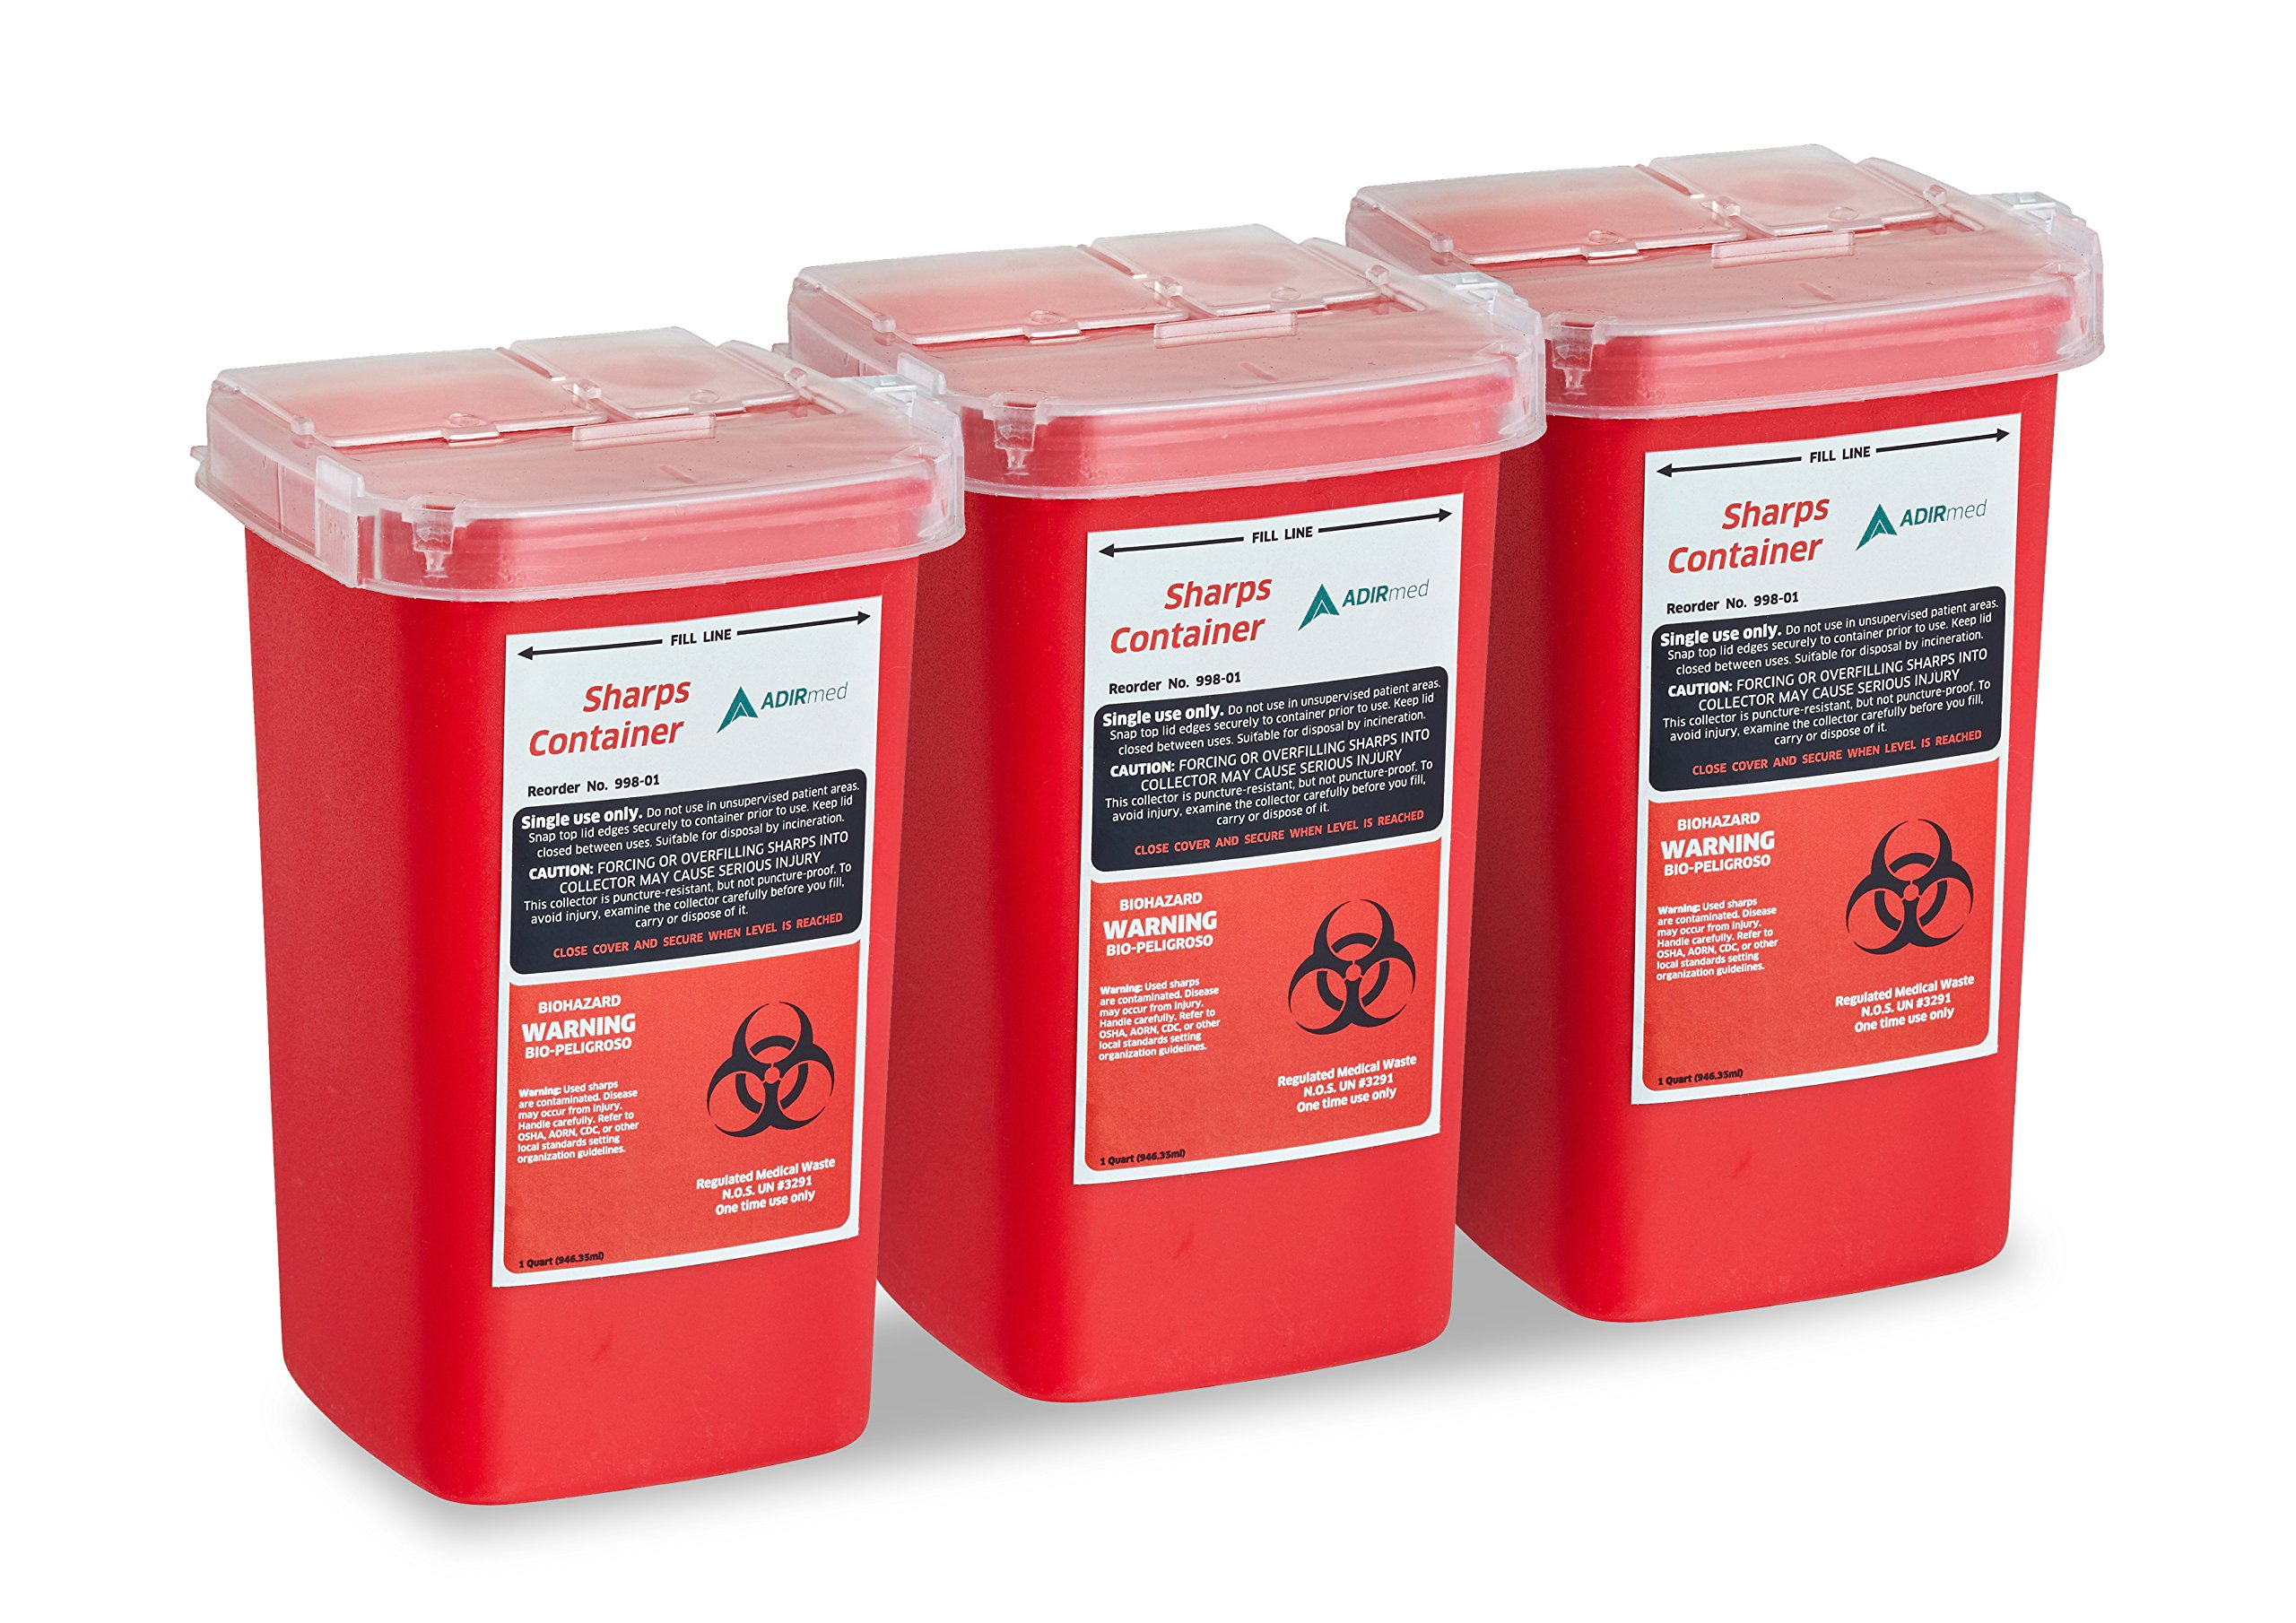 AdirMed Sharps & Needle Biohazard Disposal Container 1 Quart - 3 Pack